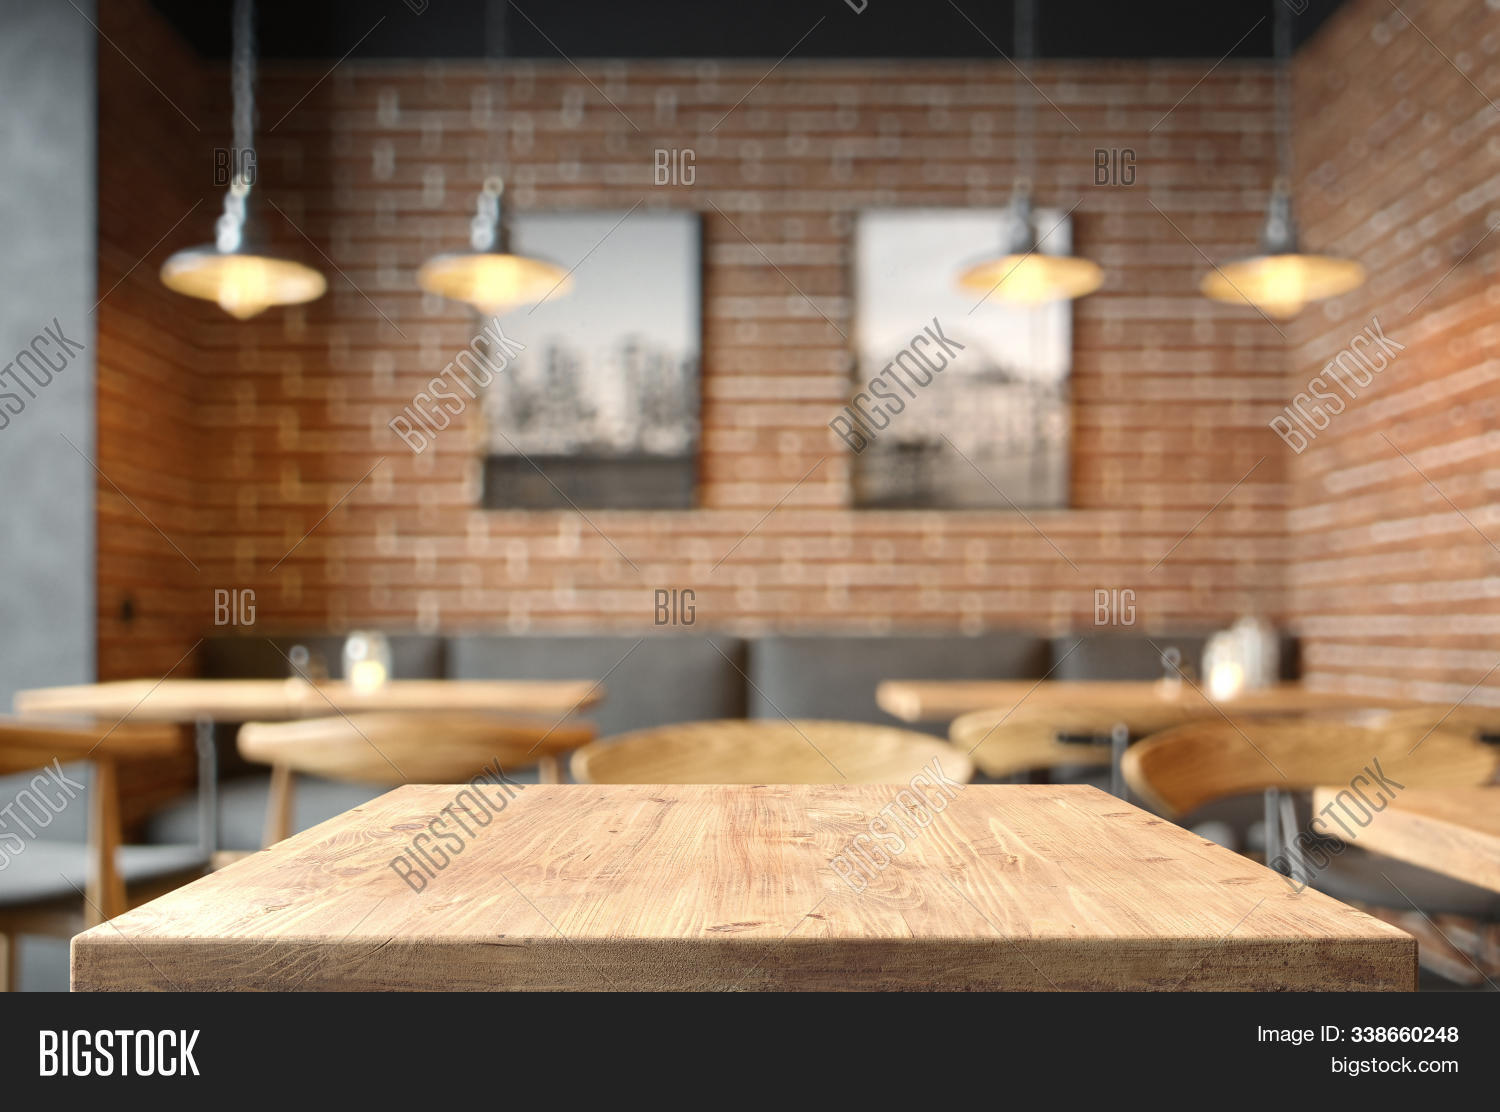 Empty Coffee Table Image Photo Free Trial Bigstock